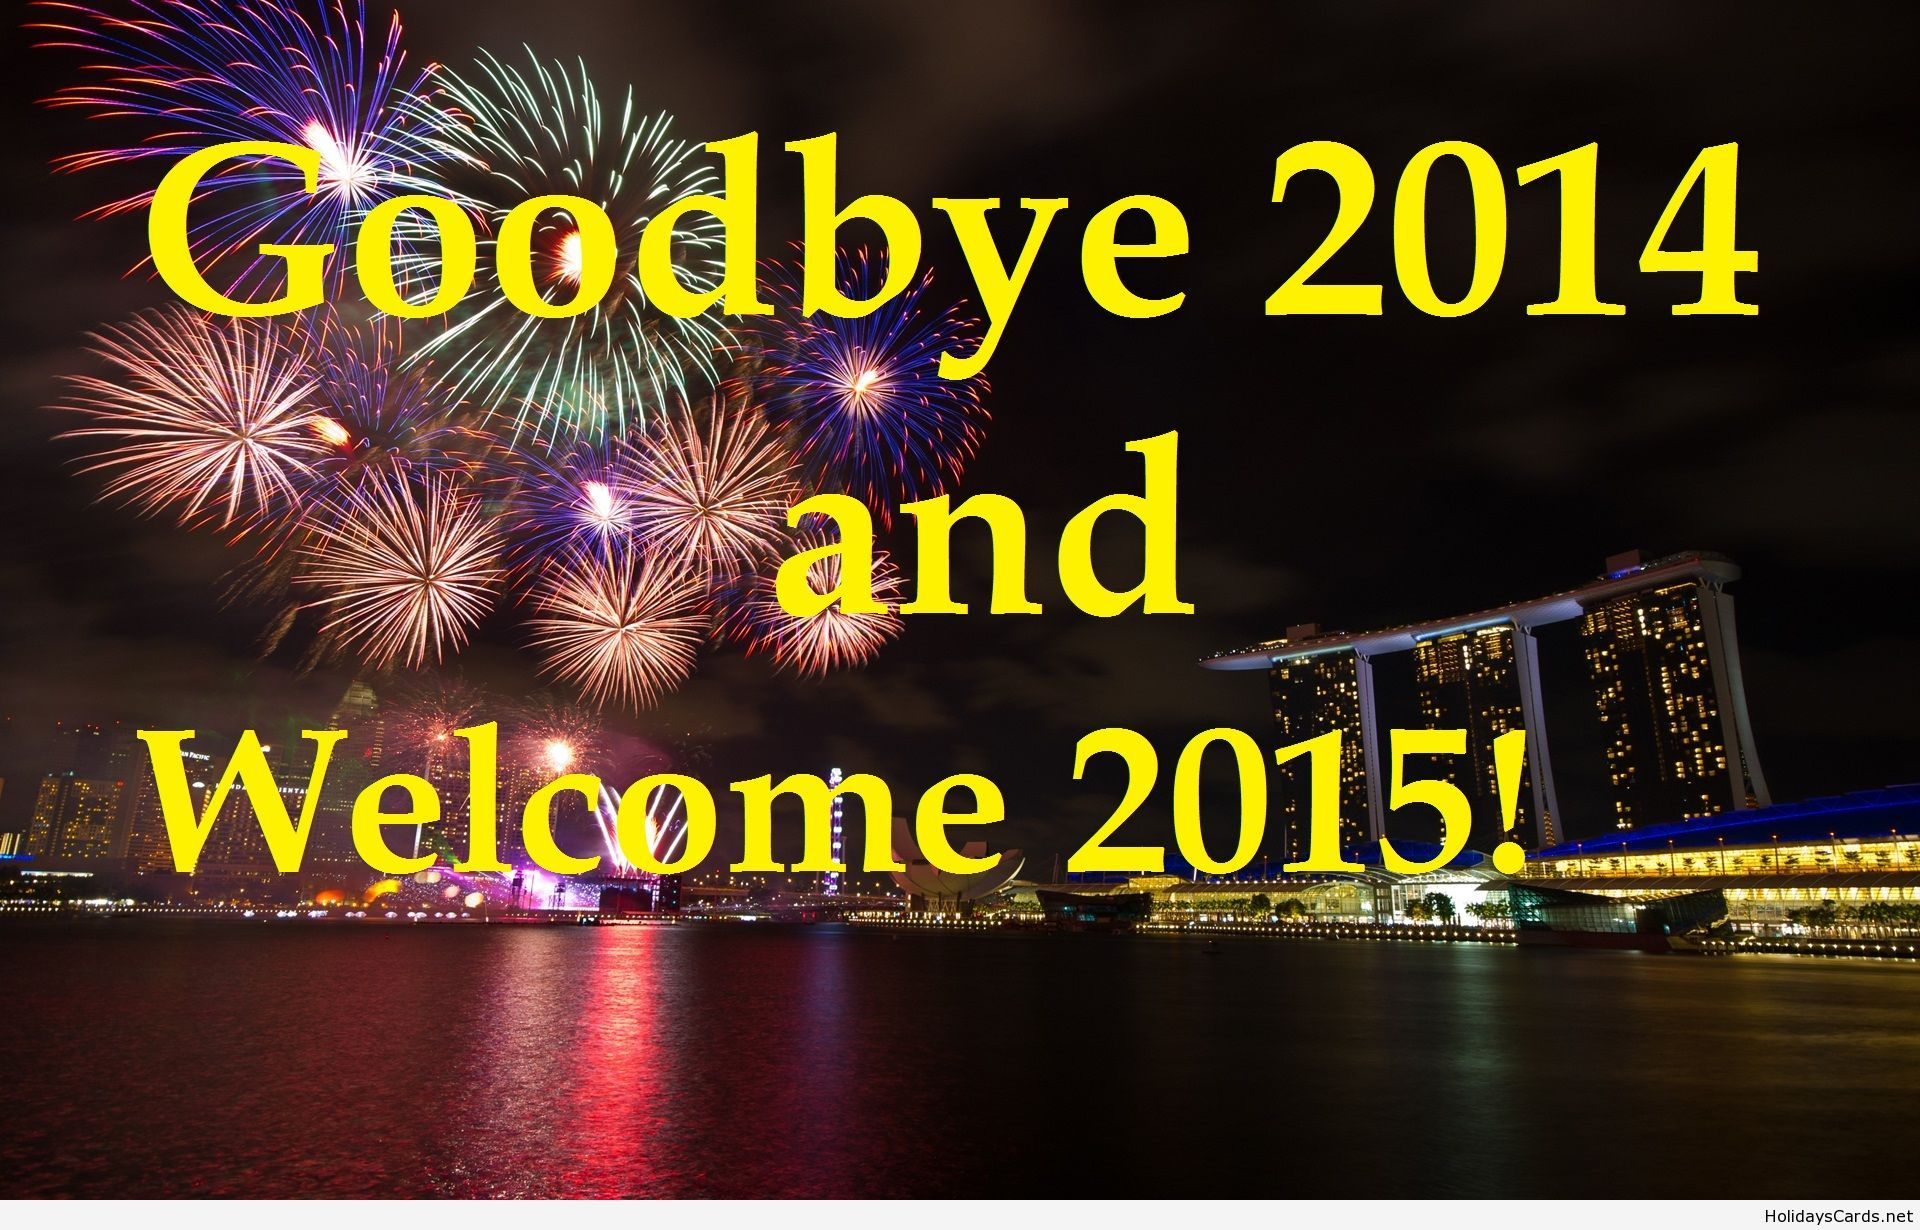 Hd goodbye 2014 and welcome 2015 wallpaper happy new year bye 2014 welcome 2015 whatsapp fb status 28 images happy new year 2016 quotes greetings wishes for bye 2014 welcome 2015 whatsapp fb status kristyandbryce Images